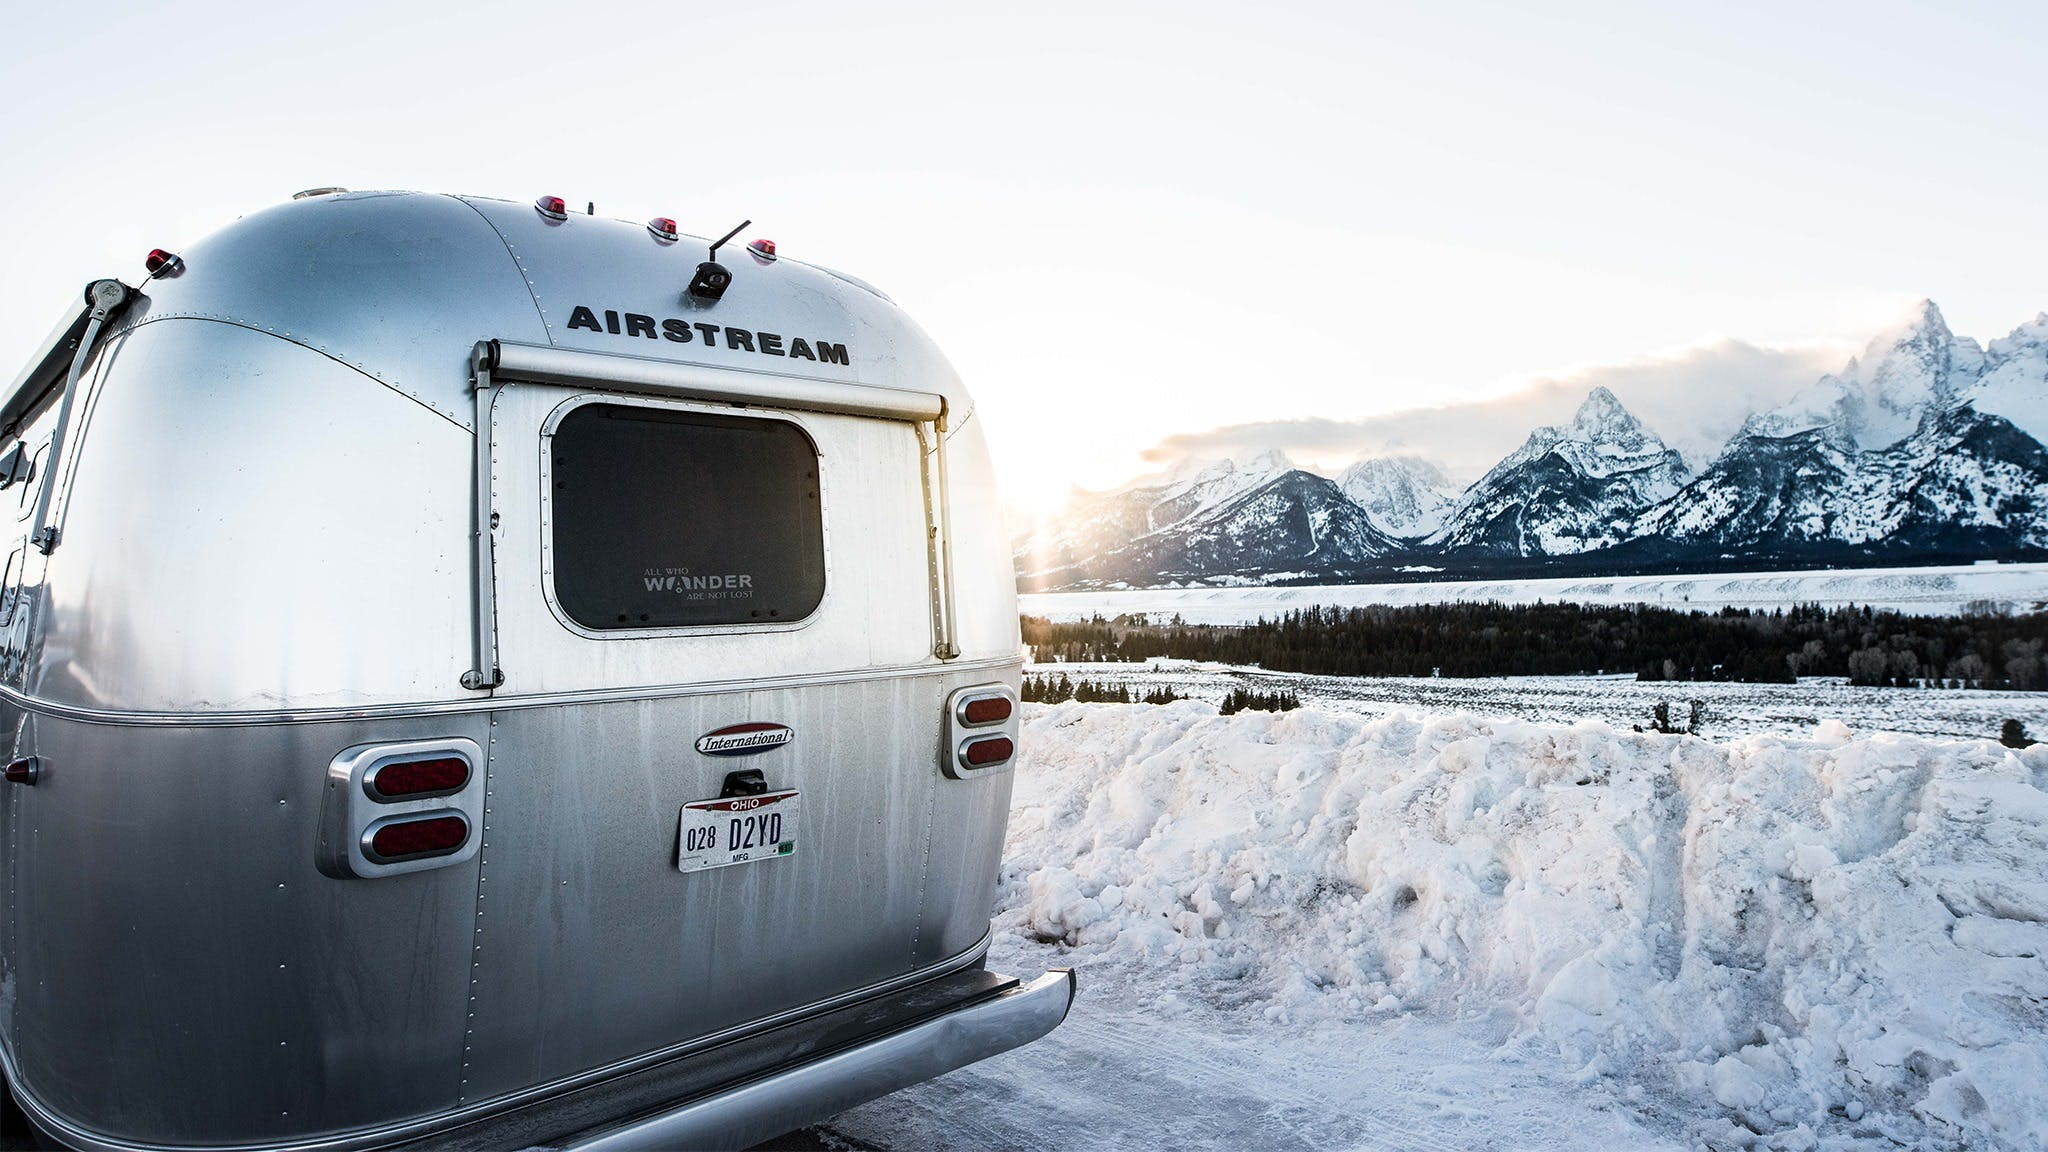 Airstream-Endless-Caravan-Winter-Camping-1.0-feature